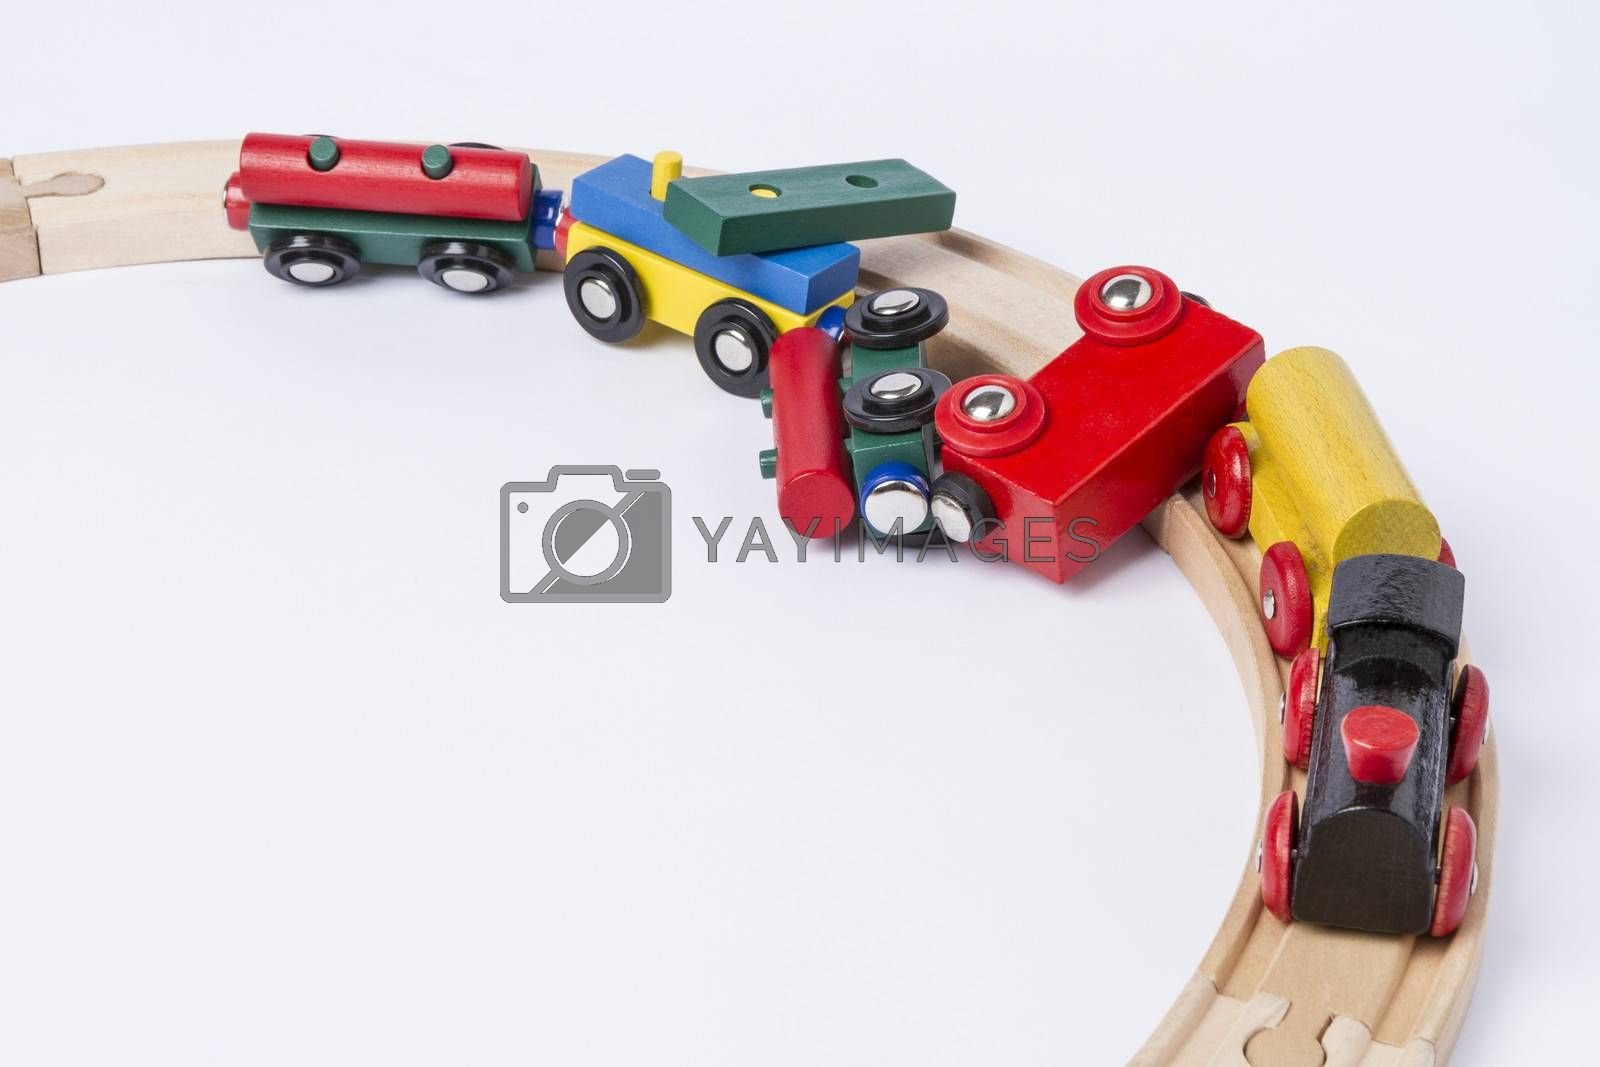 derail wooden toy train in top view. horizontal image